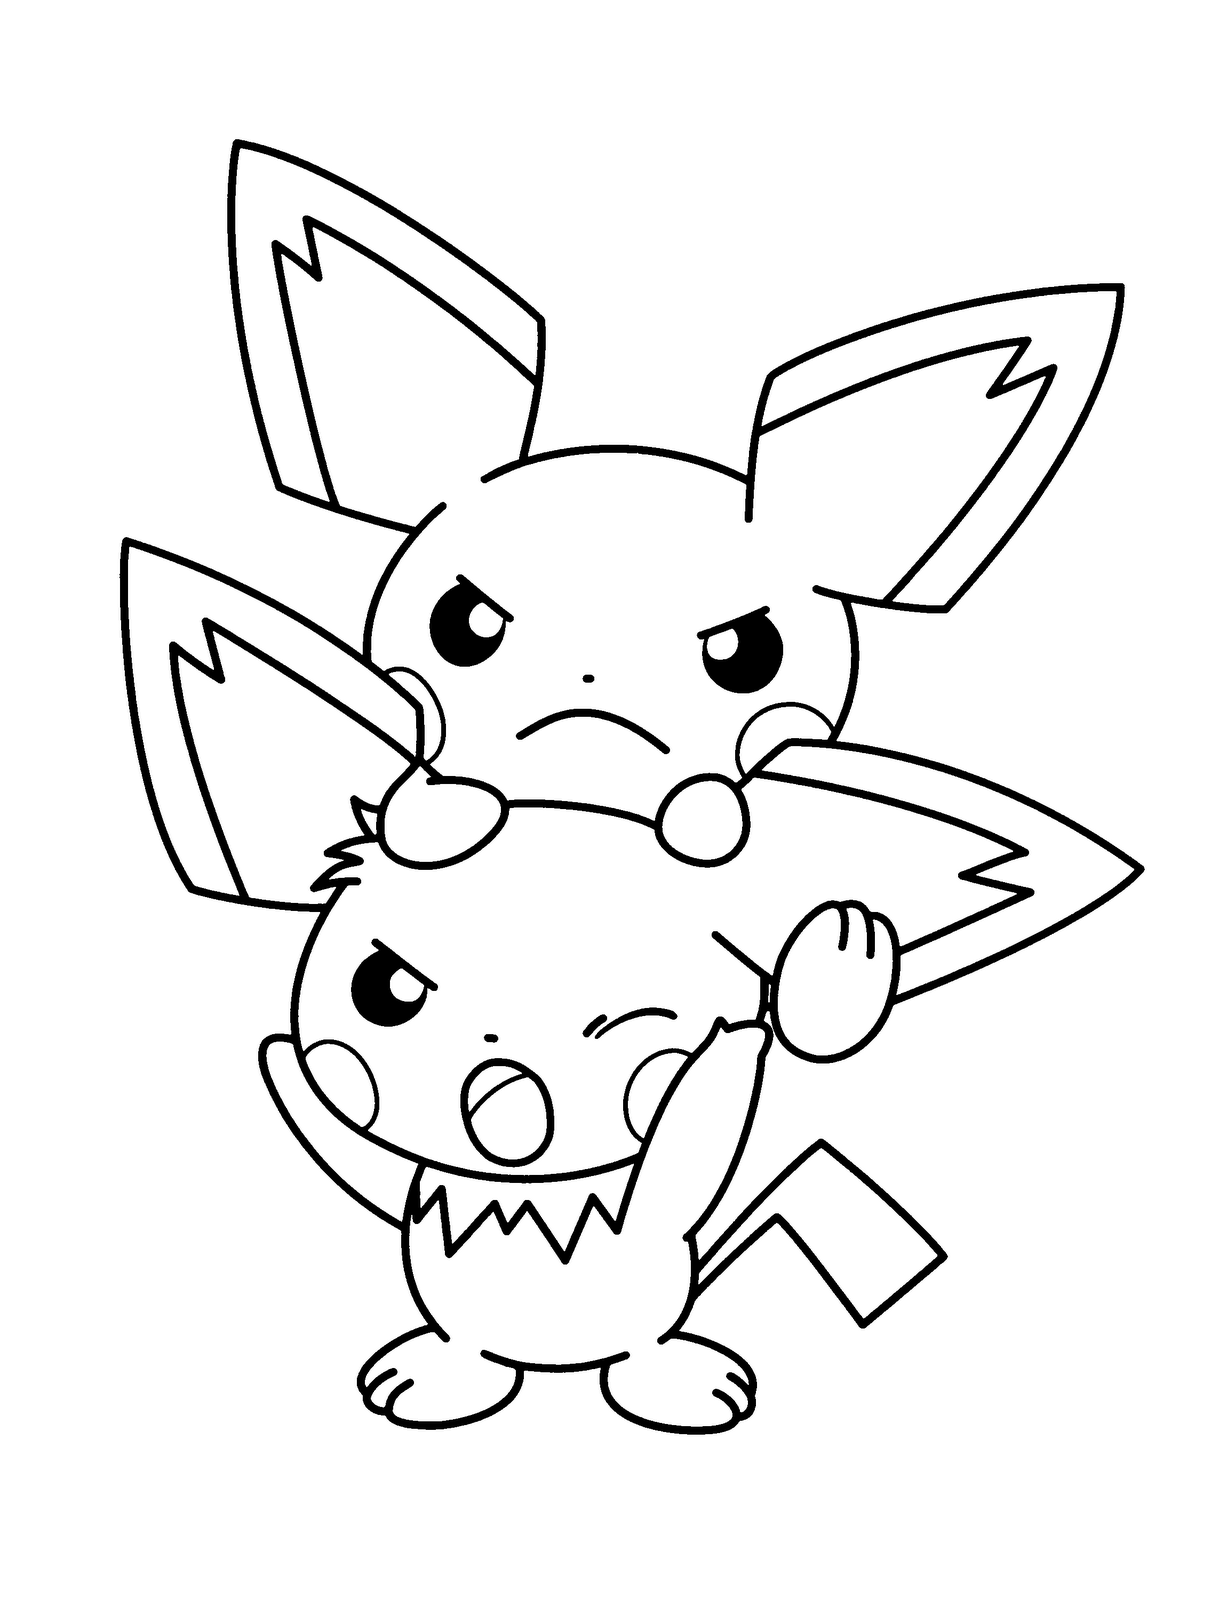 Image Result For Free Printable Pikachu Coloring Pages For Kids